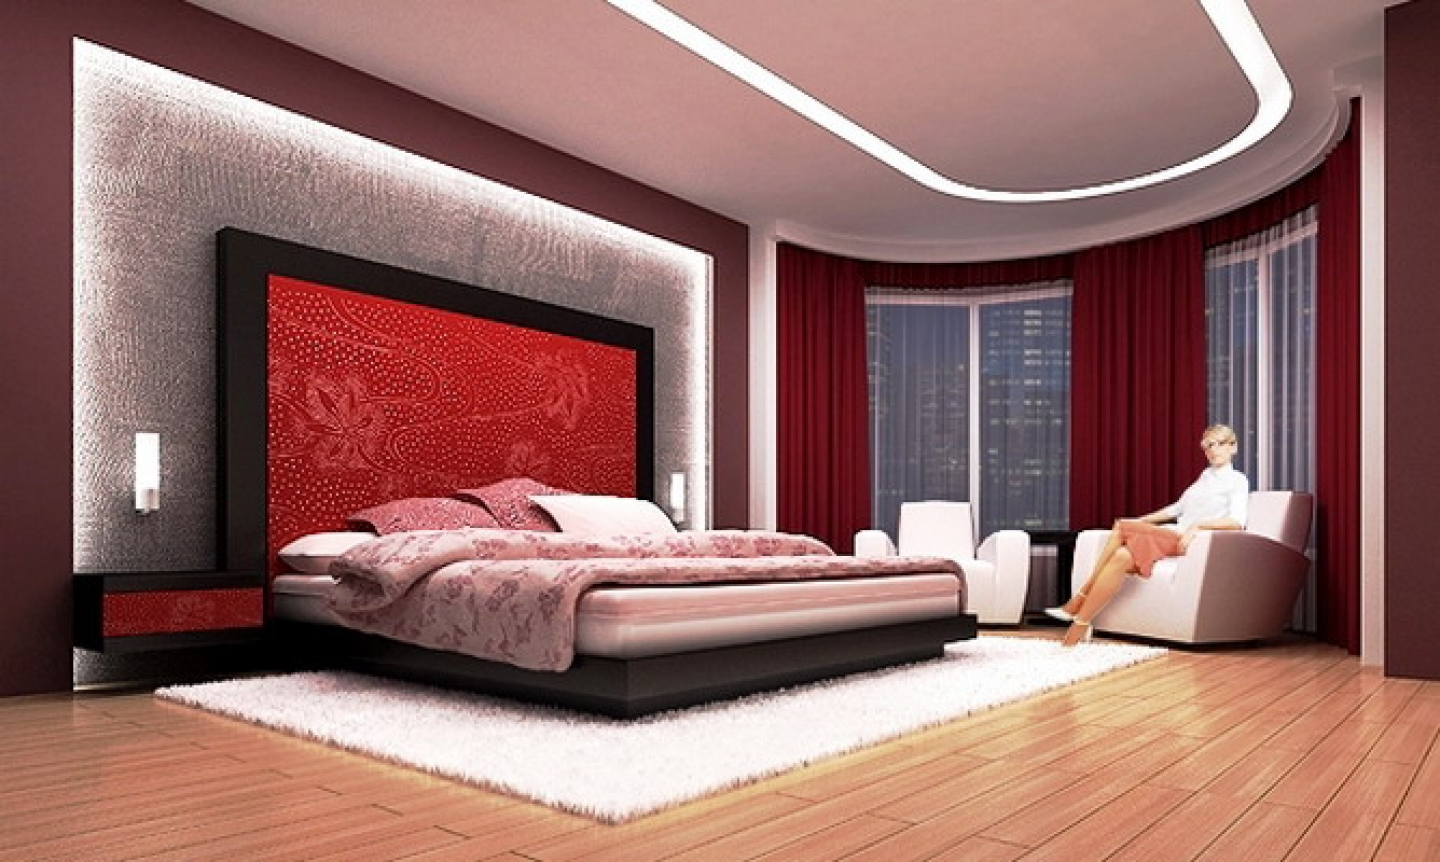 Fabulous Modern Master Bedroom Design Ideas 1440 x 862 · 725 kB · jpeg